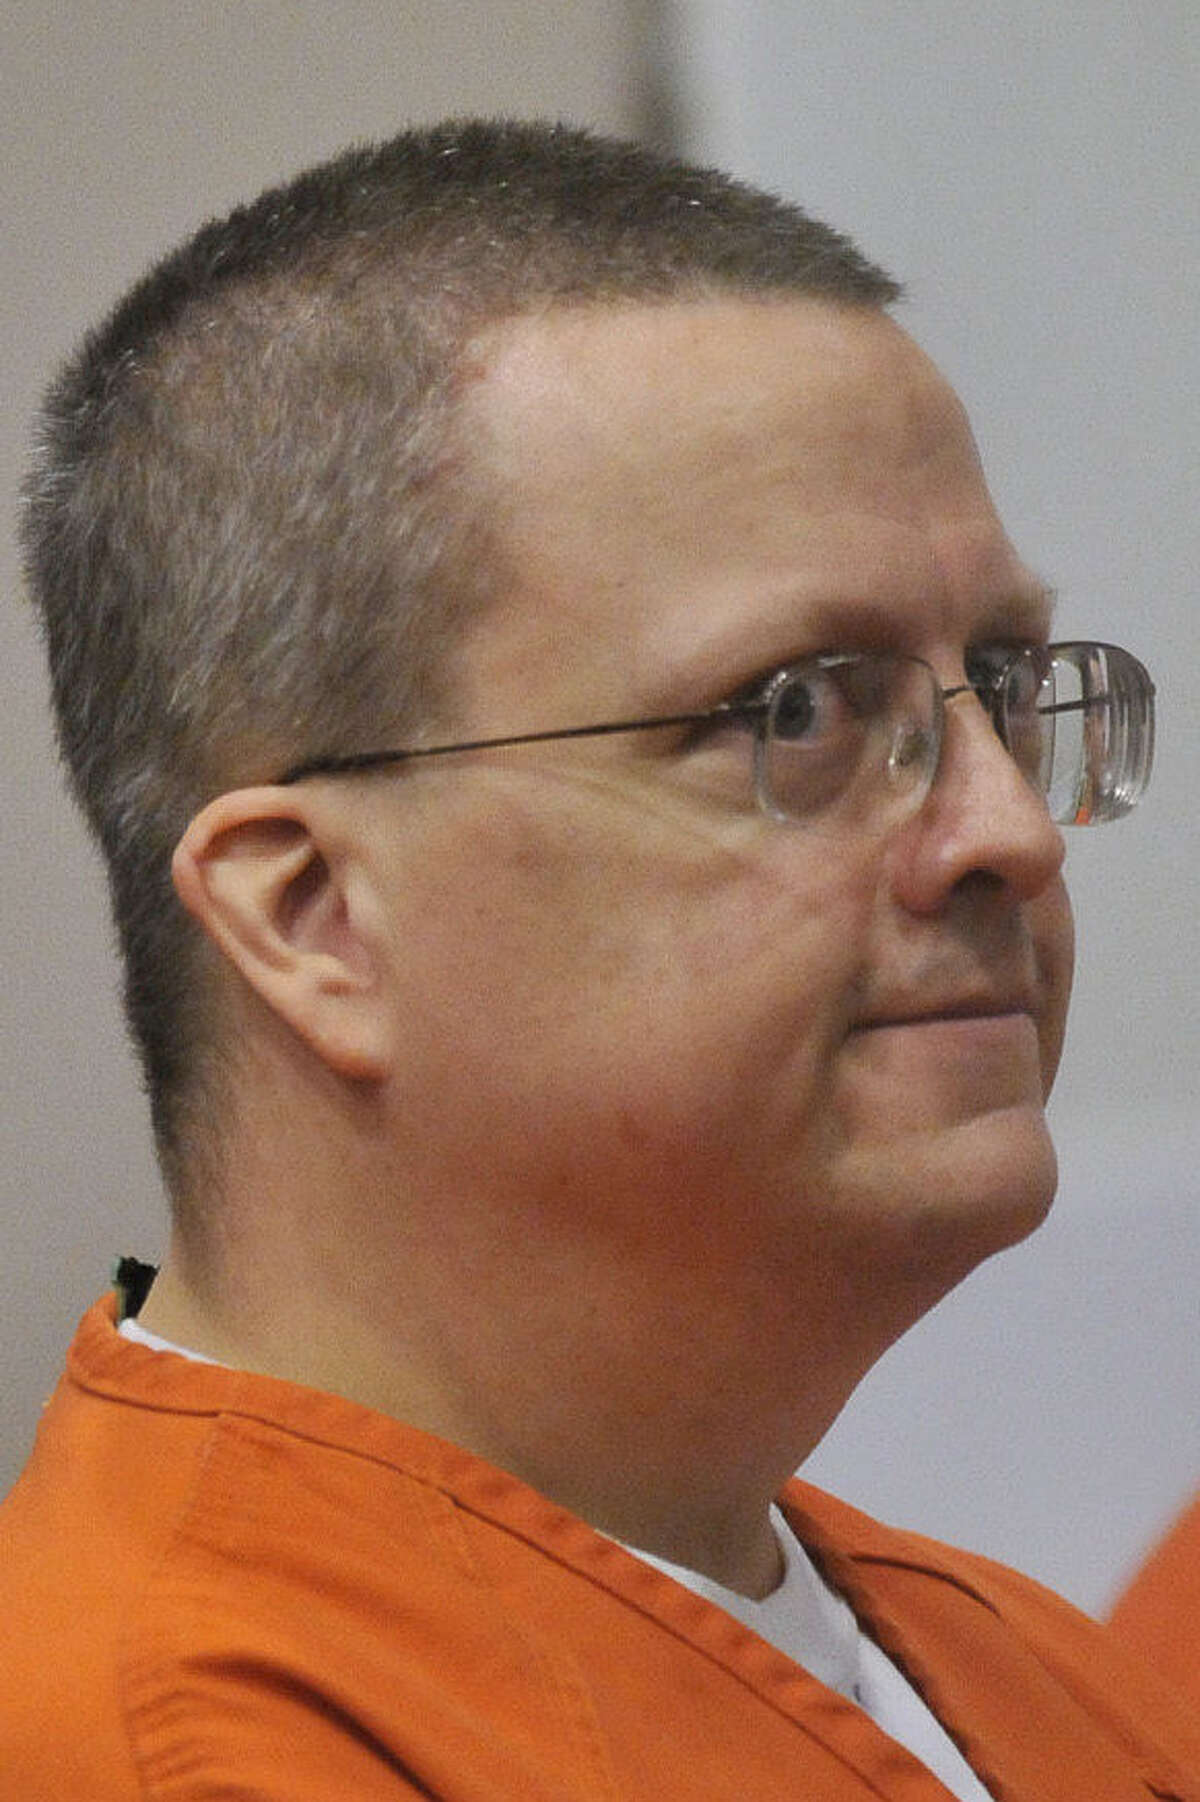 Jon Thomas Ford was sentenced to 40 years in prison.